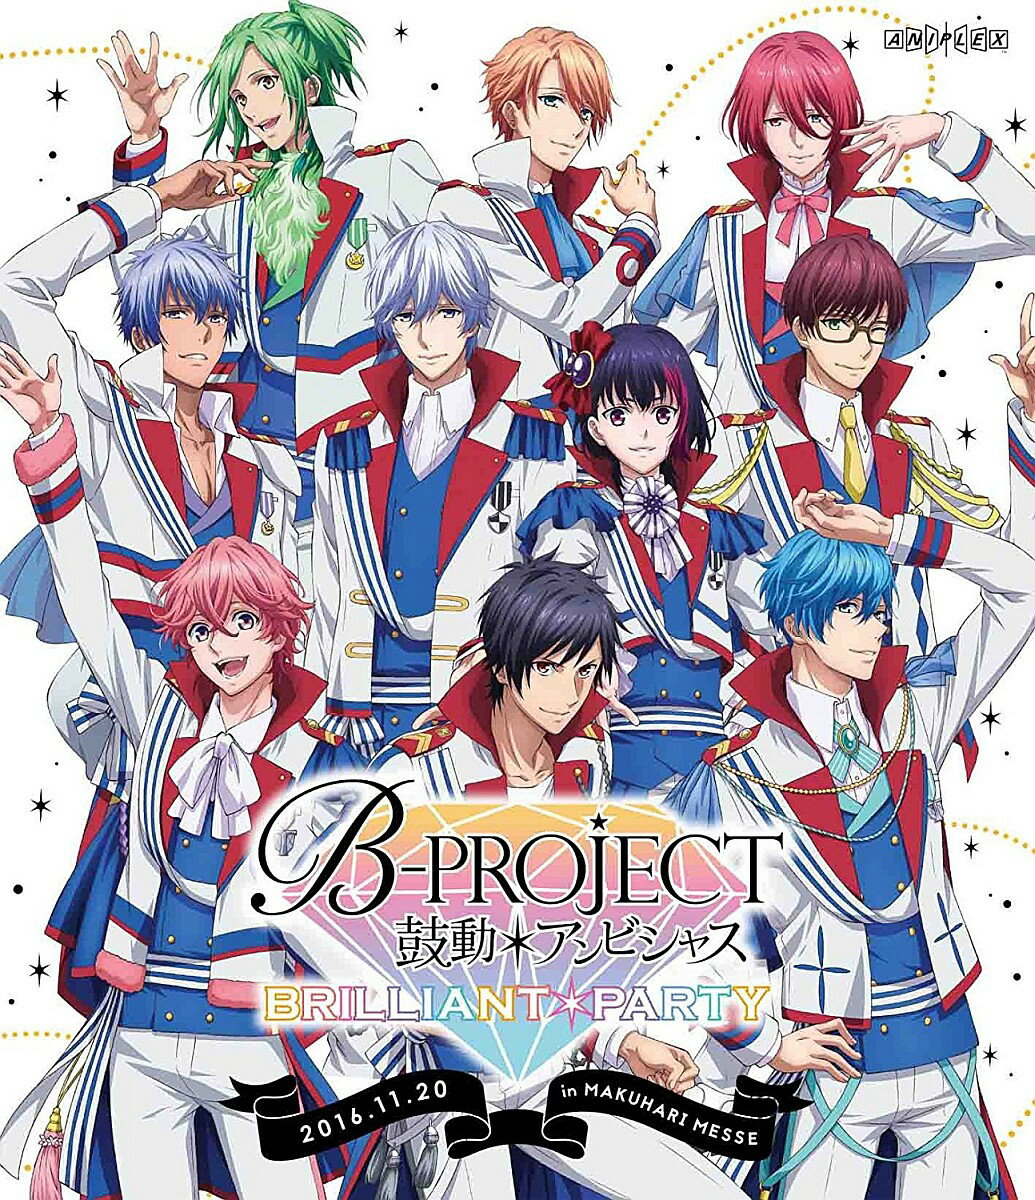 キッズアニメ, その他 B-PROJECT BRILLIANTPARTYBlu-ray